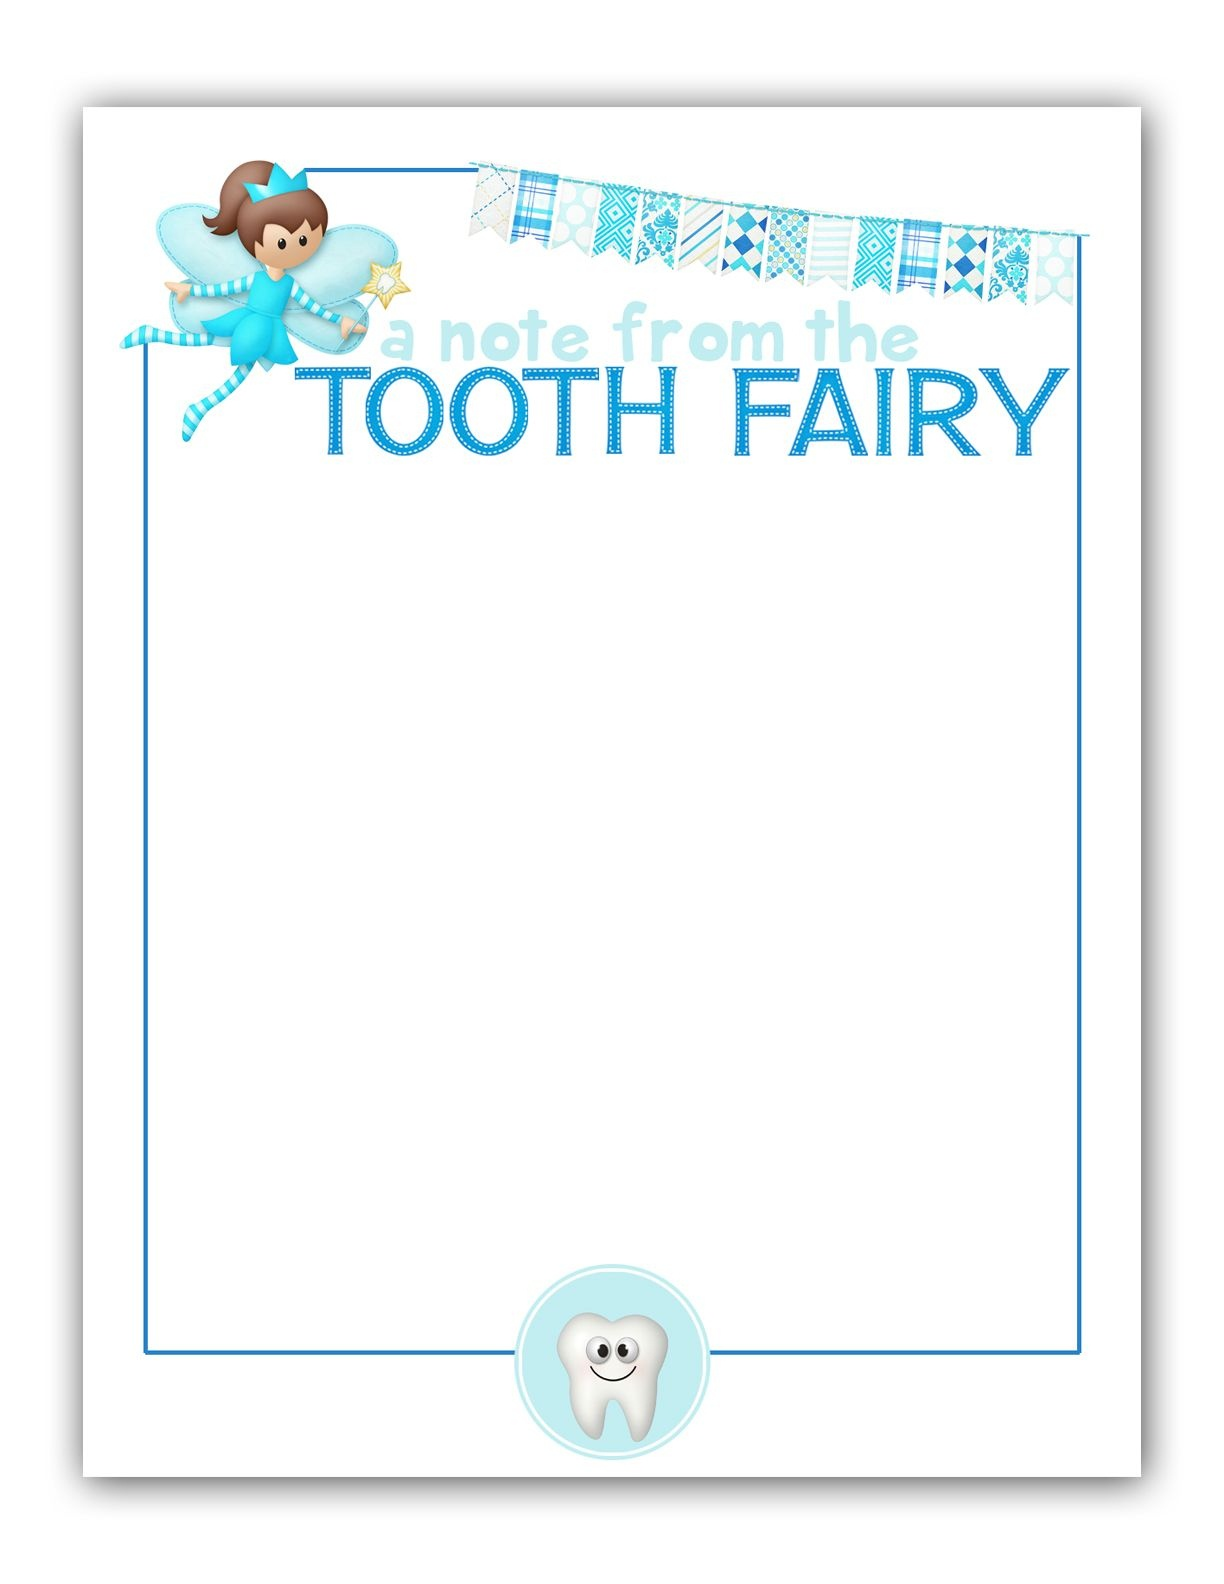 M K Designs Blog: Tooth Fairy Stationary - Free Printable   Tooth - Tooth Fairy Stationery Free Printable